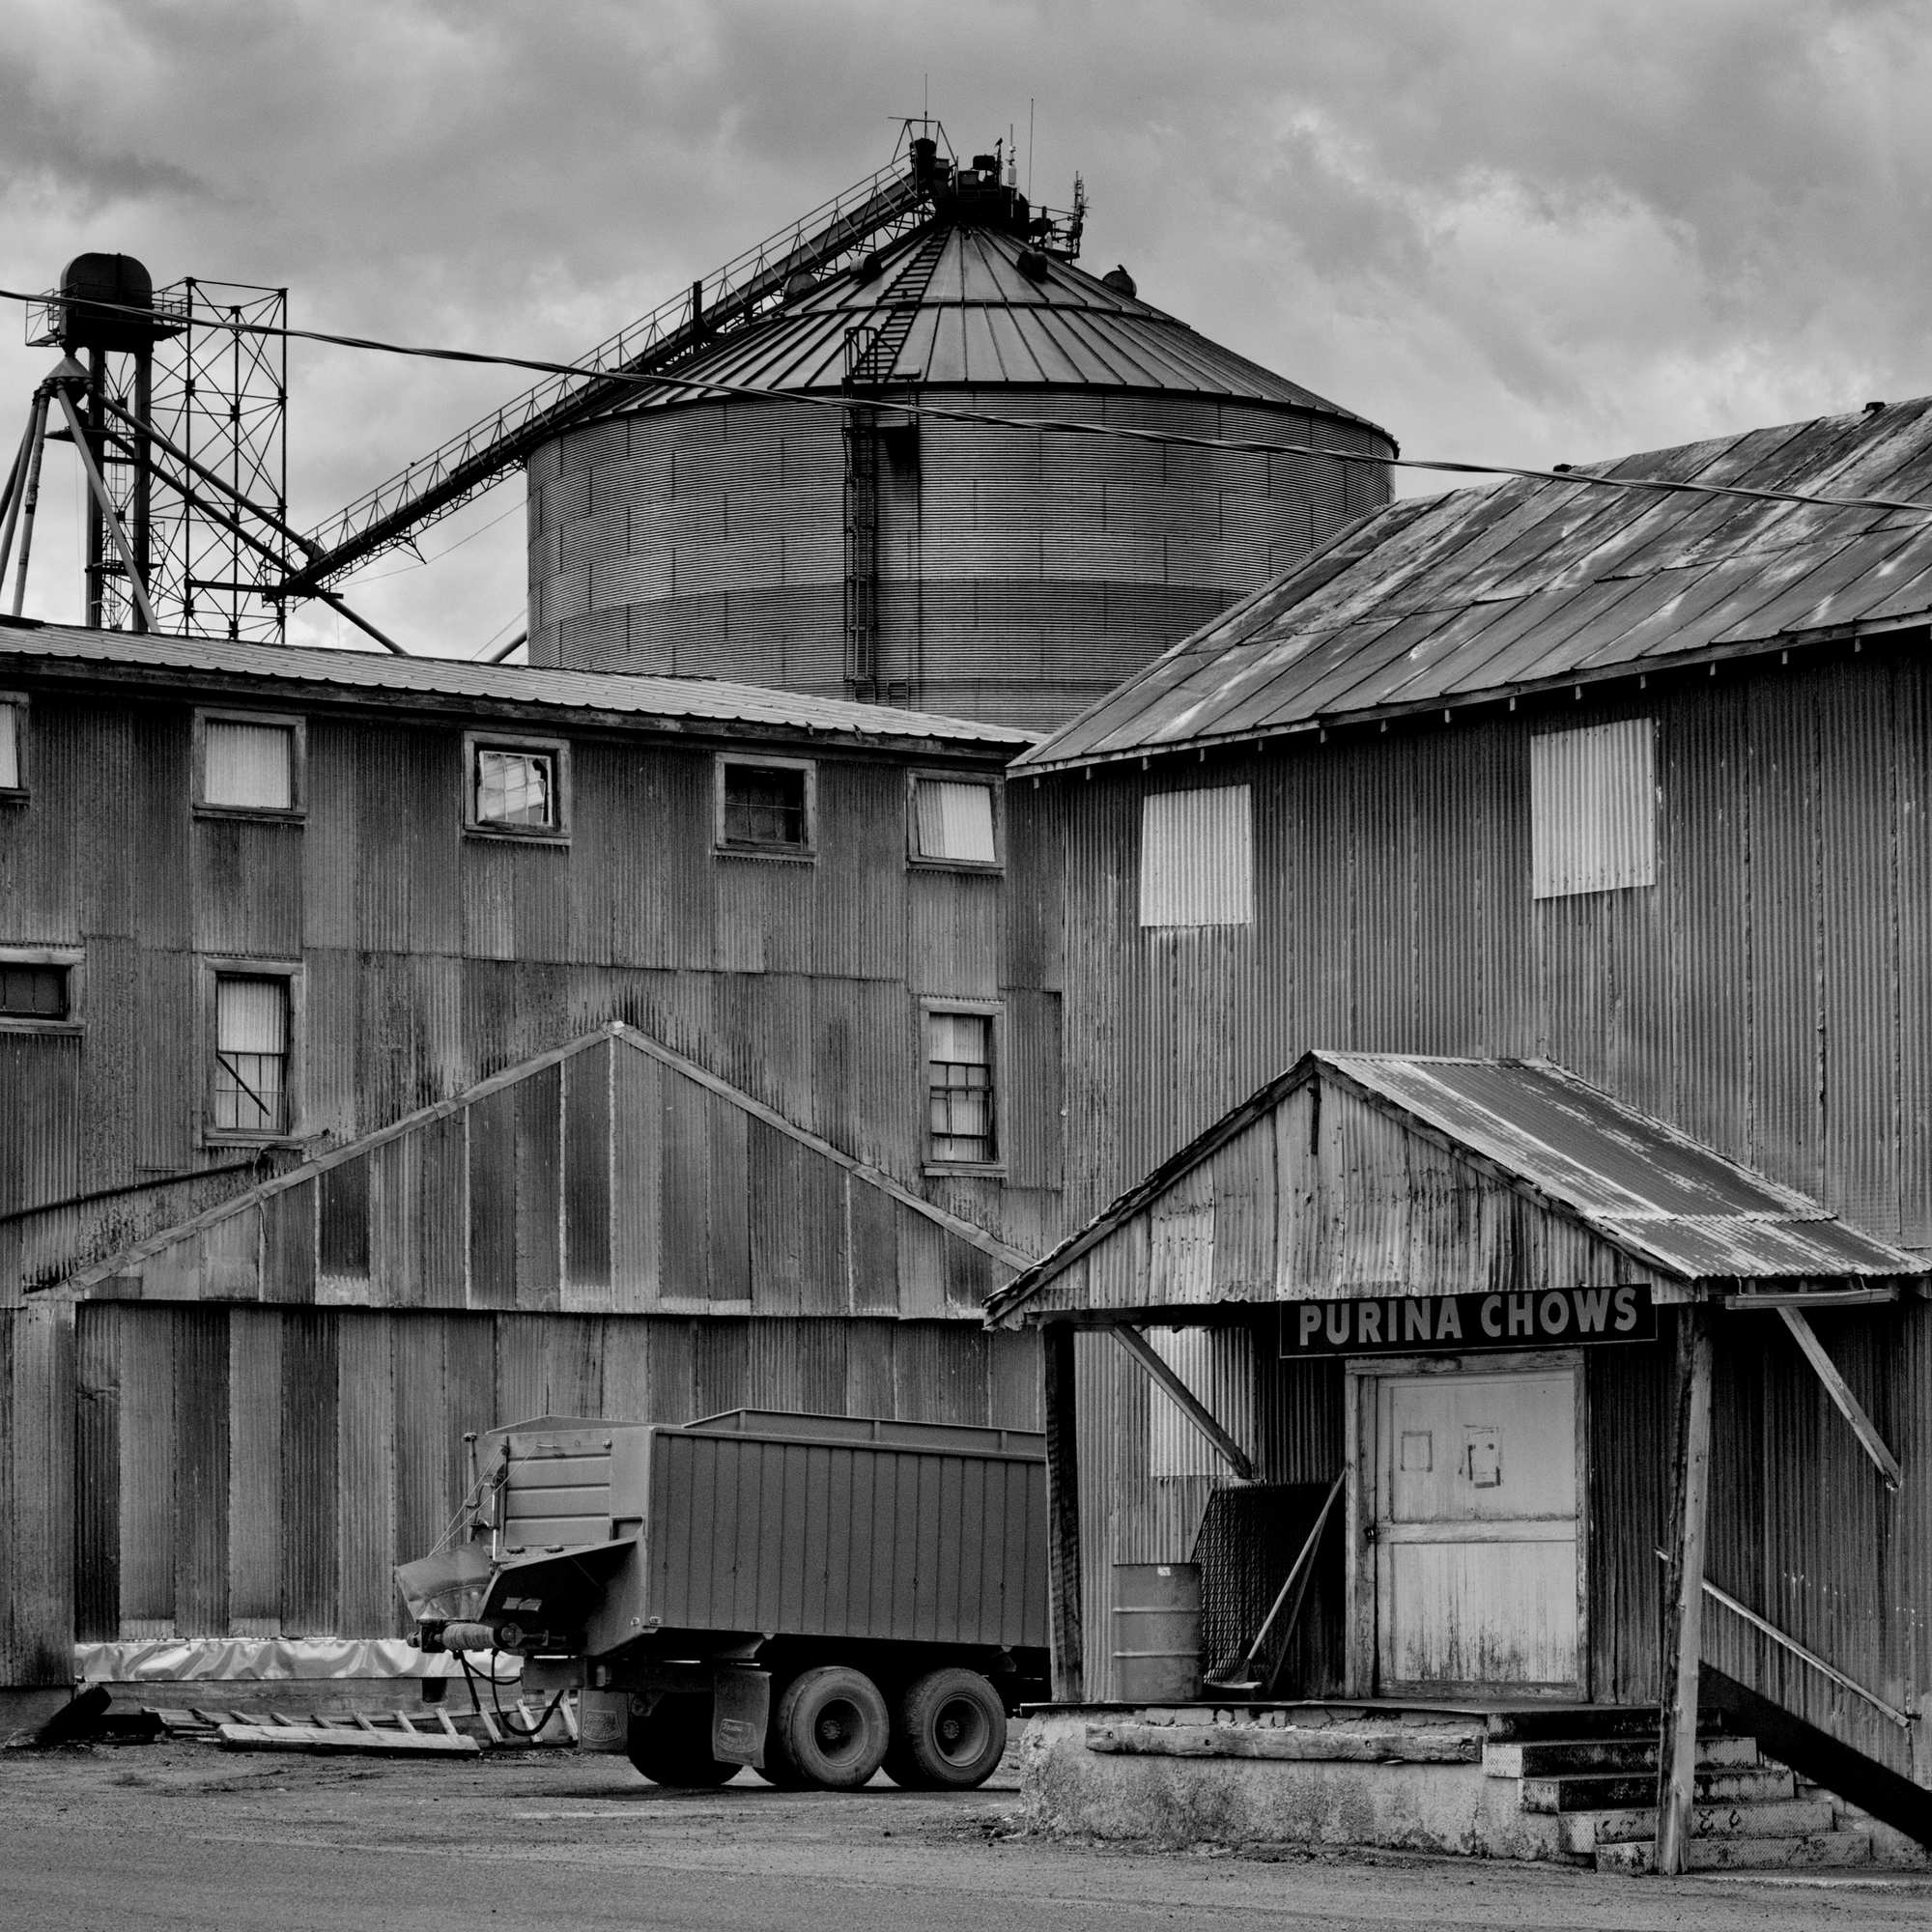 For generations, farming families and farm workers harvested crops that fed men and beasts all across America. But as the agriculture industry has dwindled, Americans have become more reliant on imported goods. This old grain silo in Ashton, Idaho belies how much has changed. Ashton is a town in Fremont County witha population of 1,127 and 21.8% live below the poverty level.